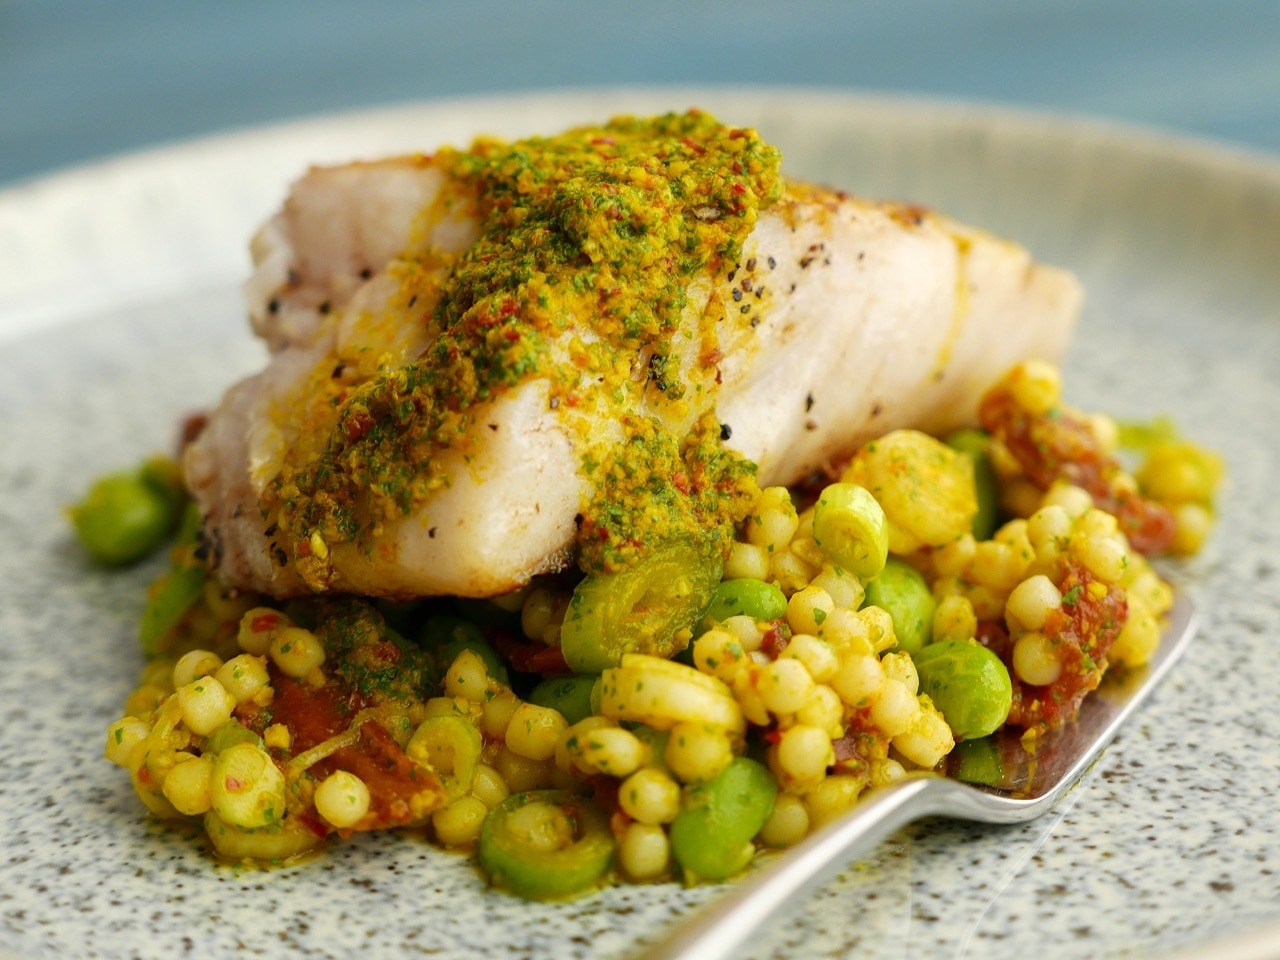 Roast Pollock with Beans, Grains & Rice